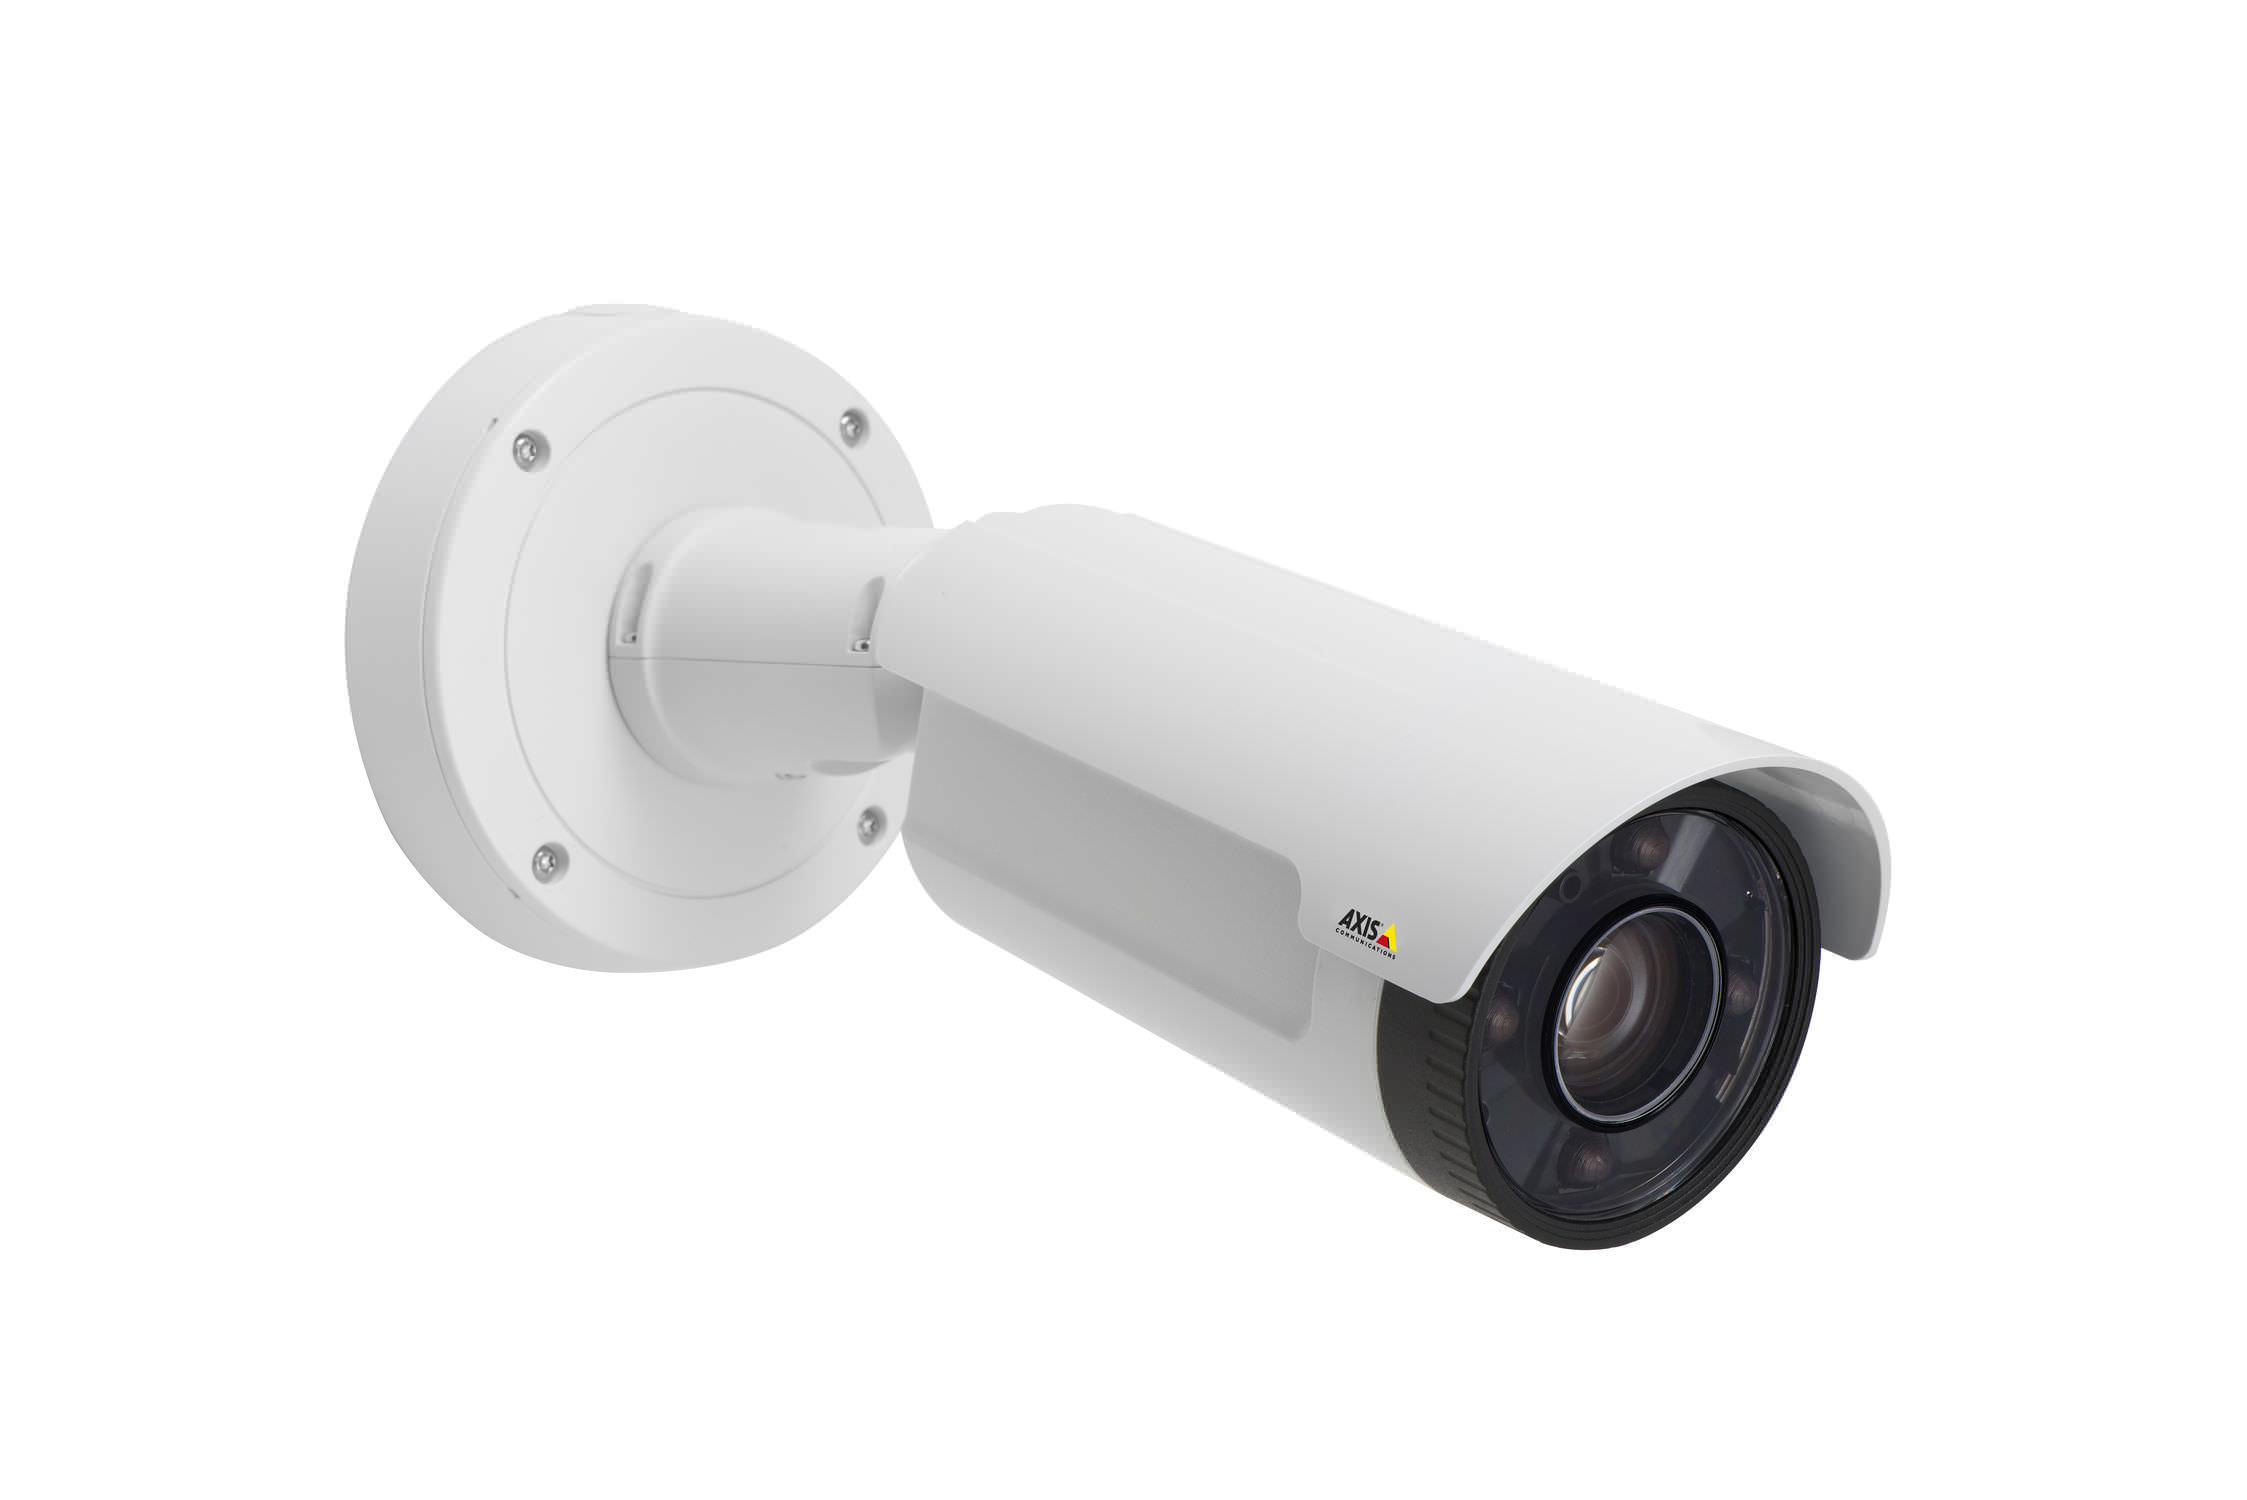 DC Male Power Plug To 2 60006693606 furthermore Watch in addition Plastic Dome 20m Cctv Camera furthermore Residential and  mercial sewer and pipe maintenance3 moreover Camera Hawk 501ircb. on cctv color camera